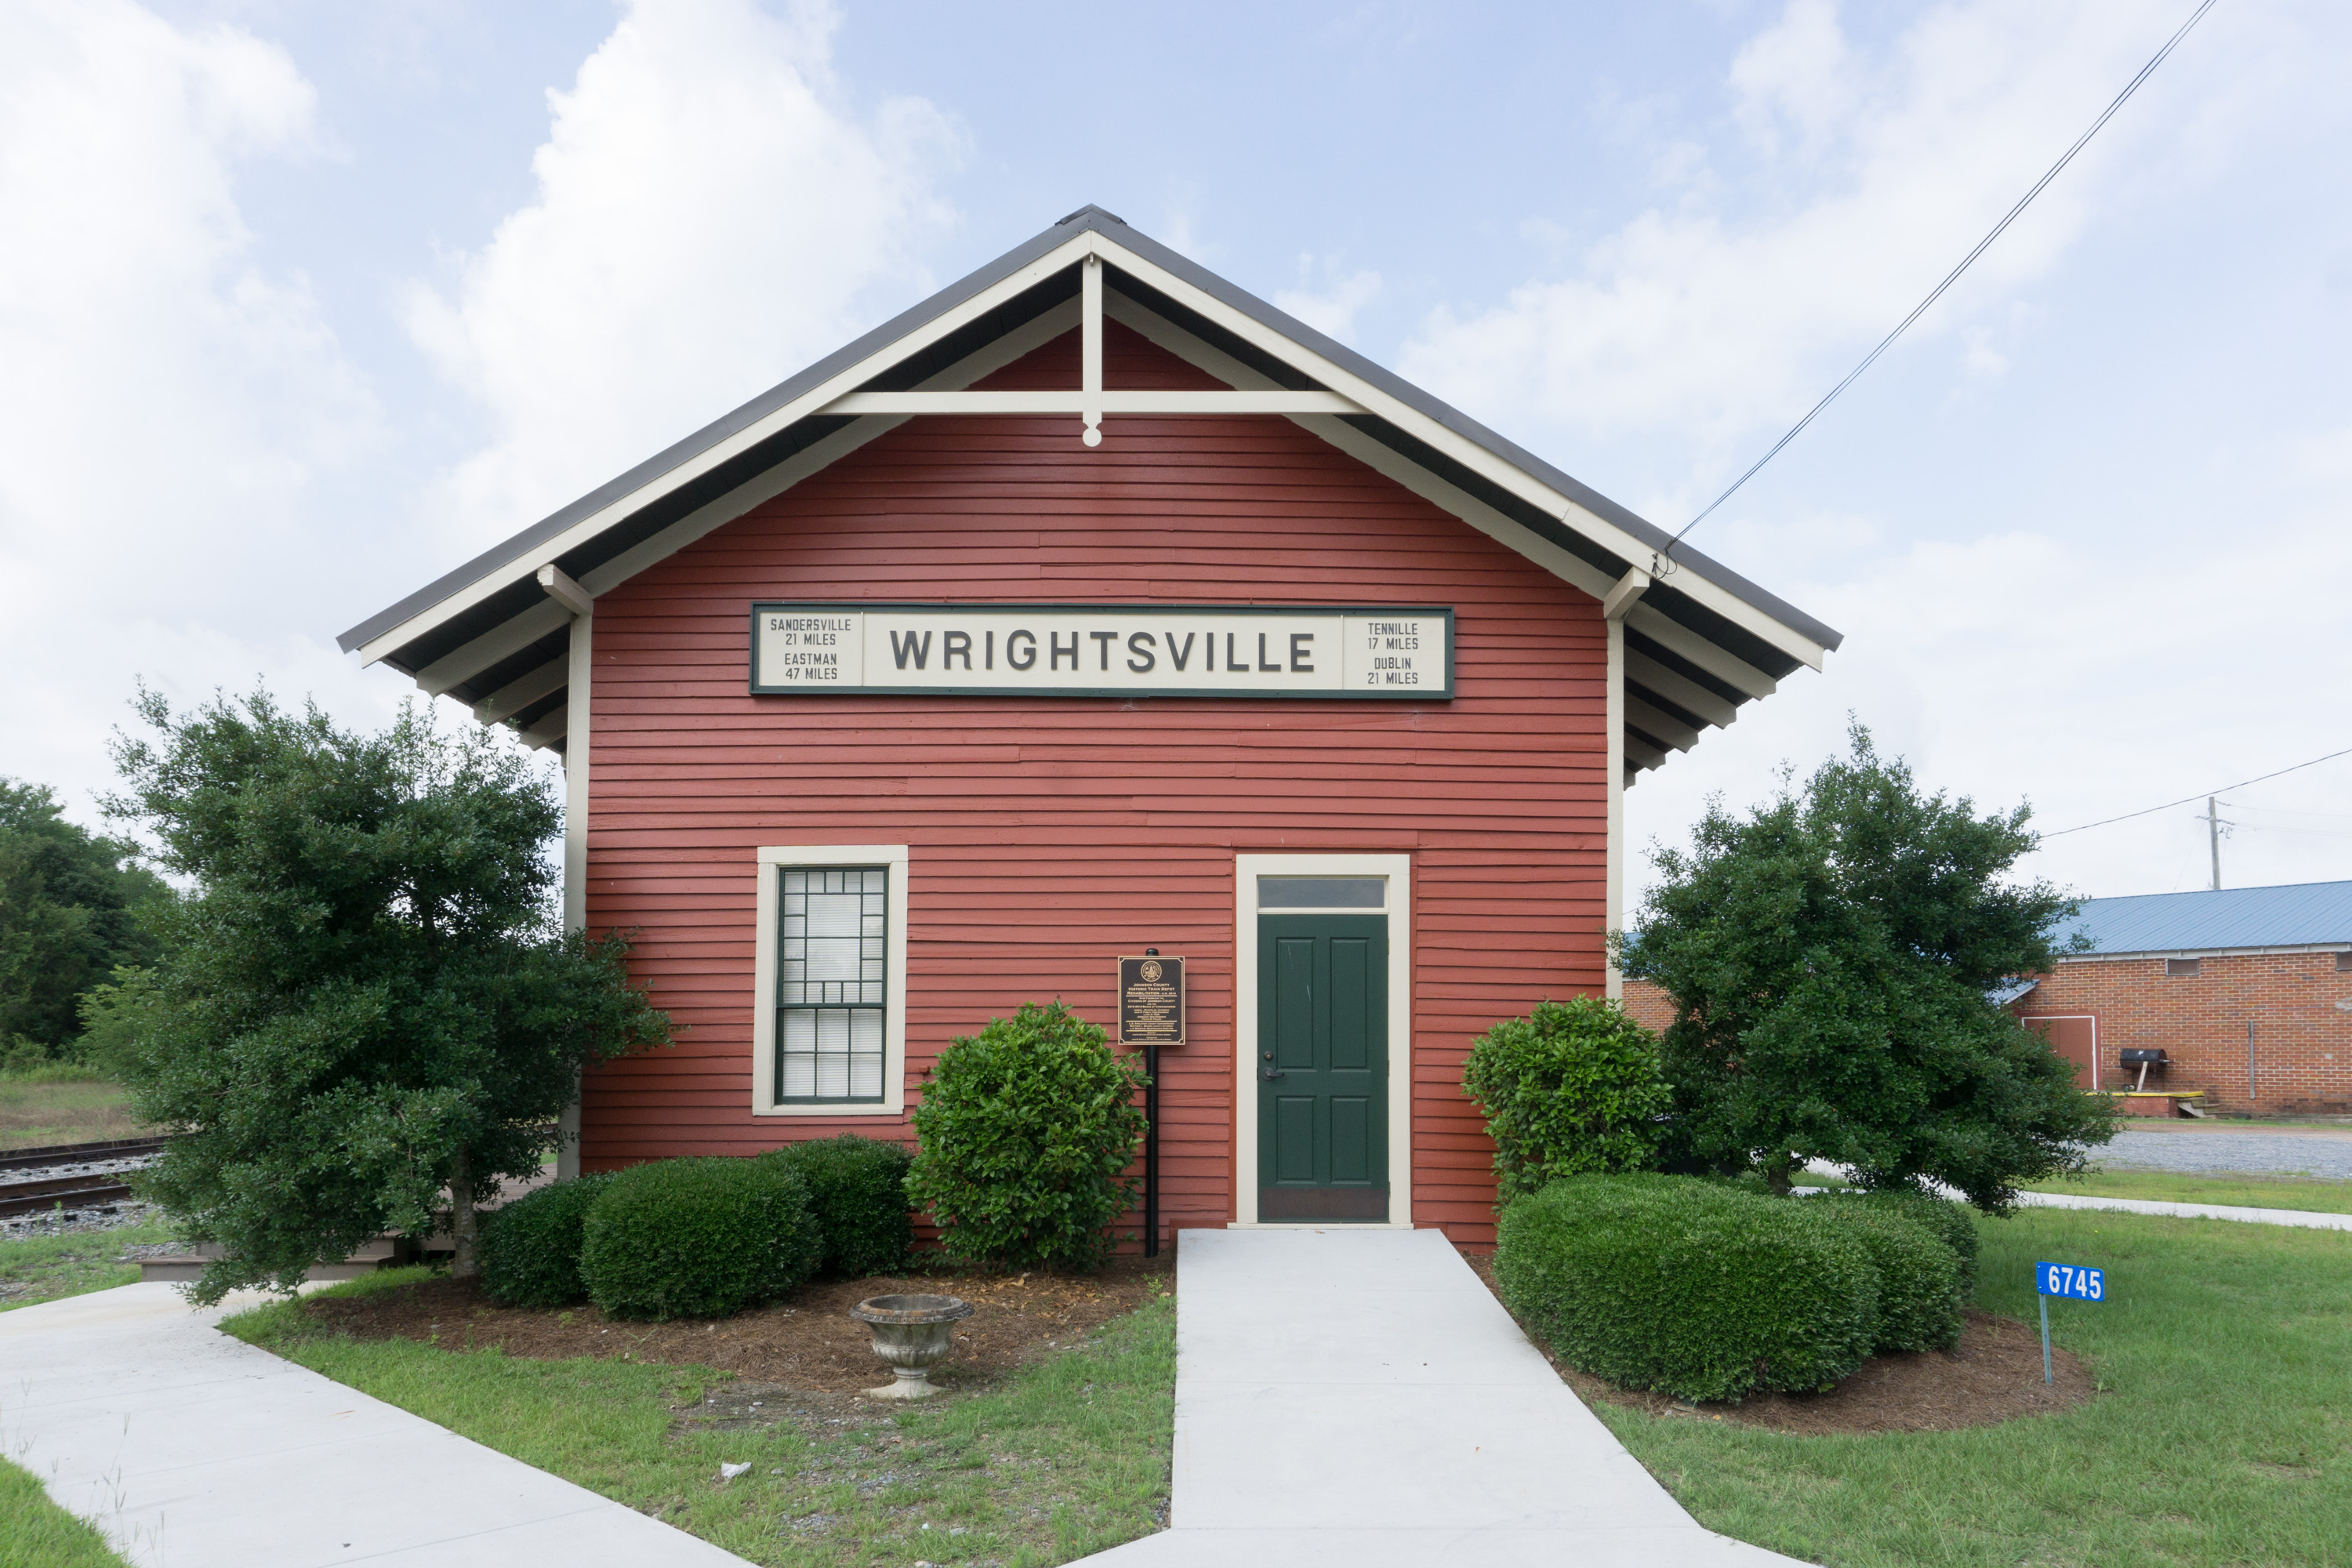 Washington_Wrightsville_depot1